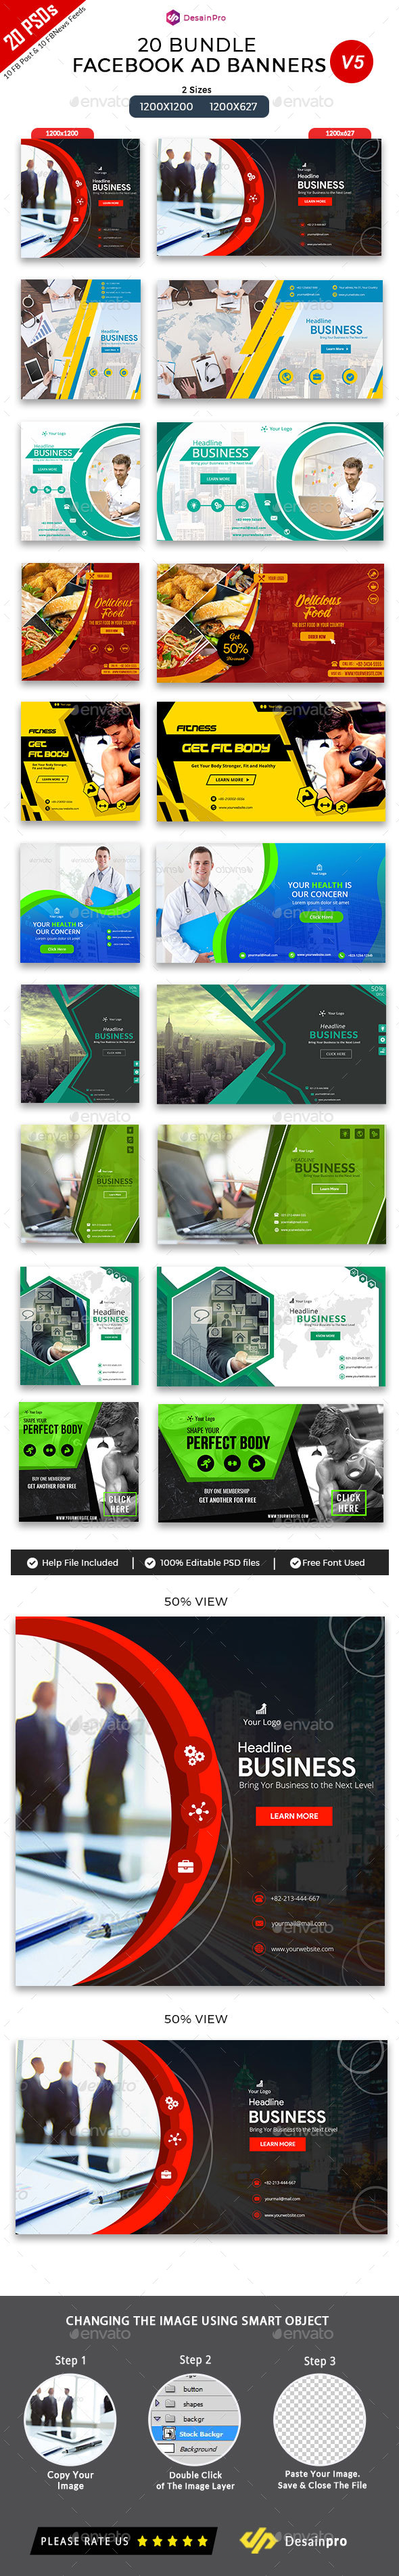 20 Facebook Ad Banners V5 Bundle - AR - Social Media Web Elements